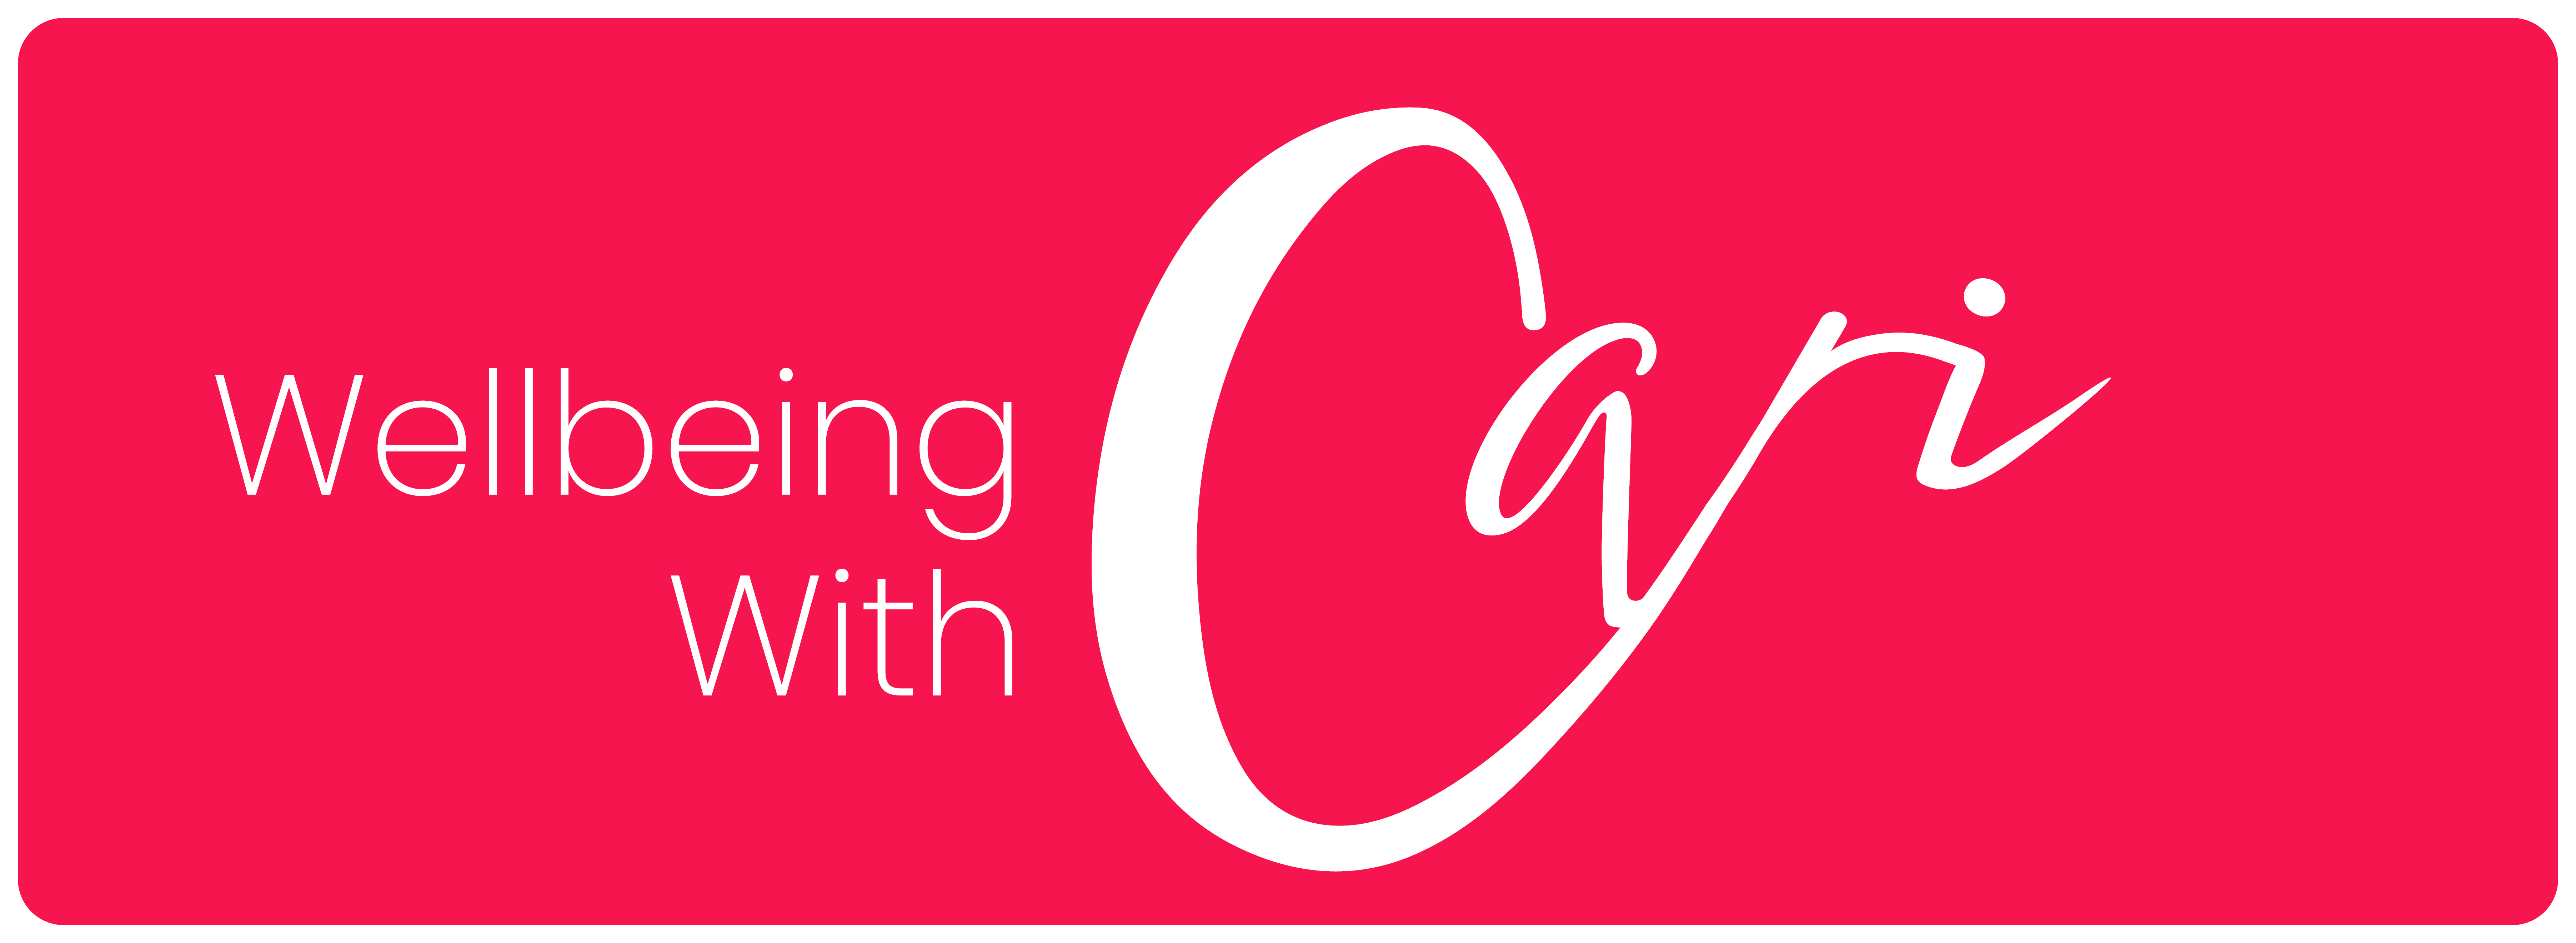 Wellbeing with Cari